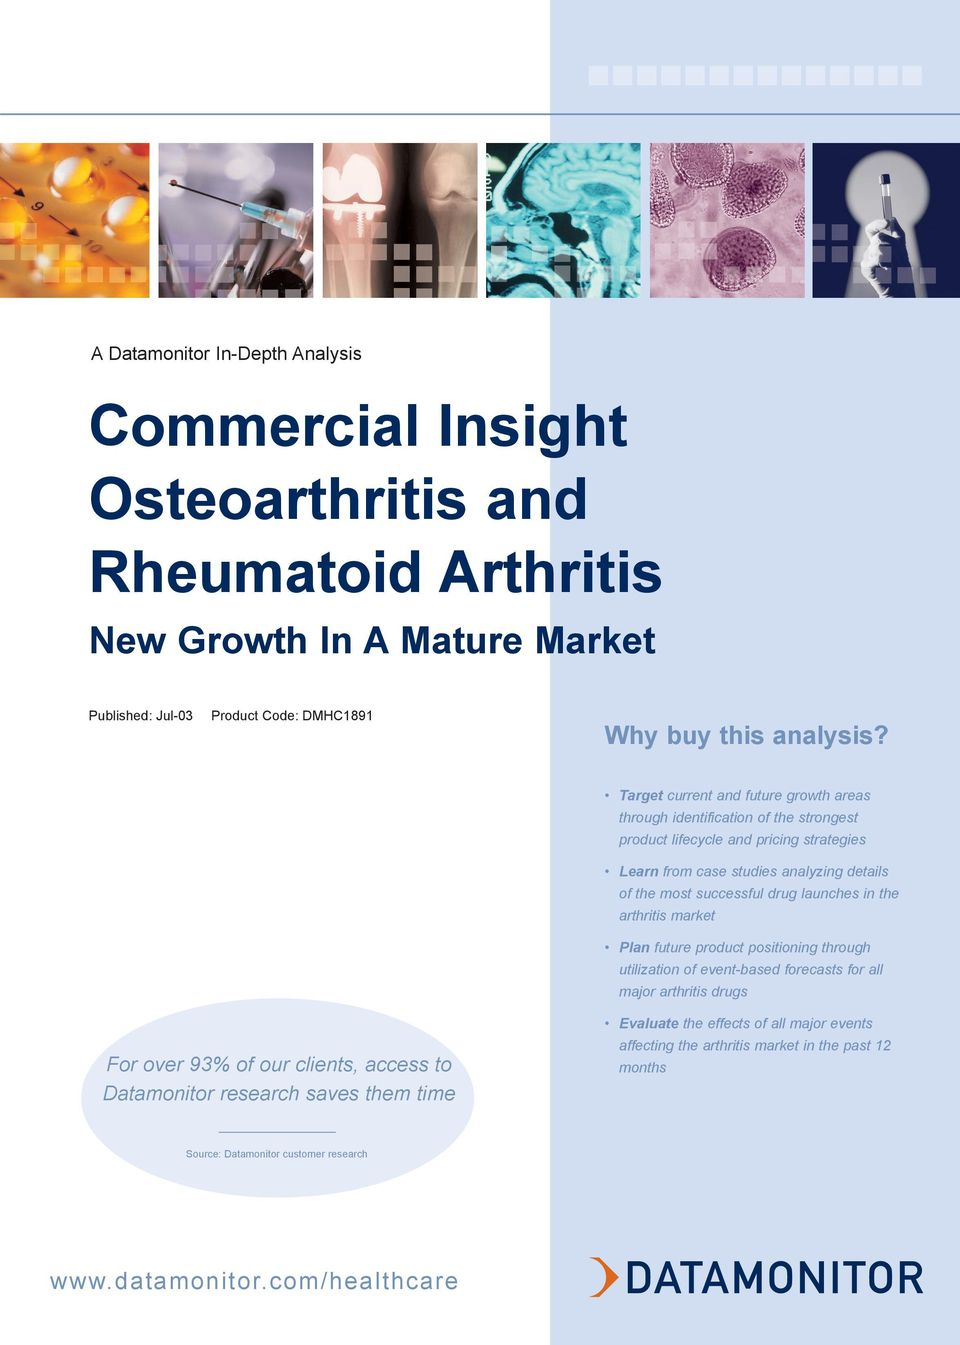 drug launches in the arthritis market Plan future product positioning through utilization of event-based forecasts for all major arthritis drugs For over 93% of our clients, access to